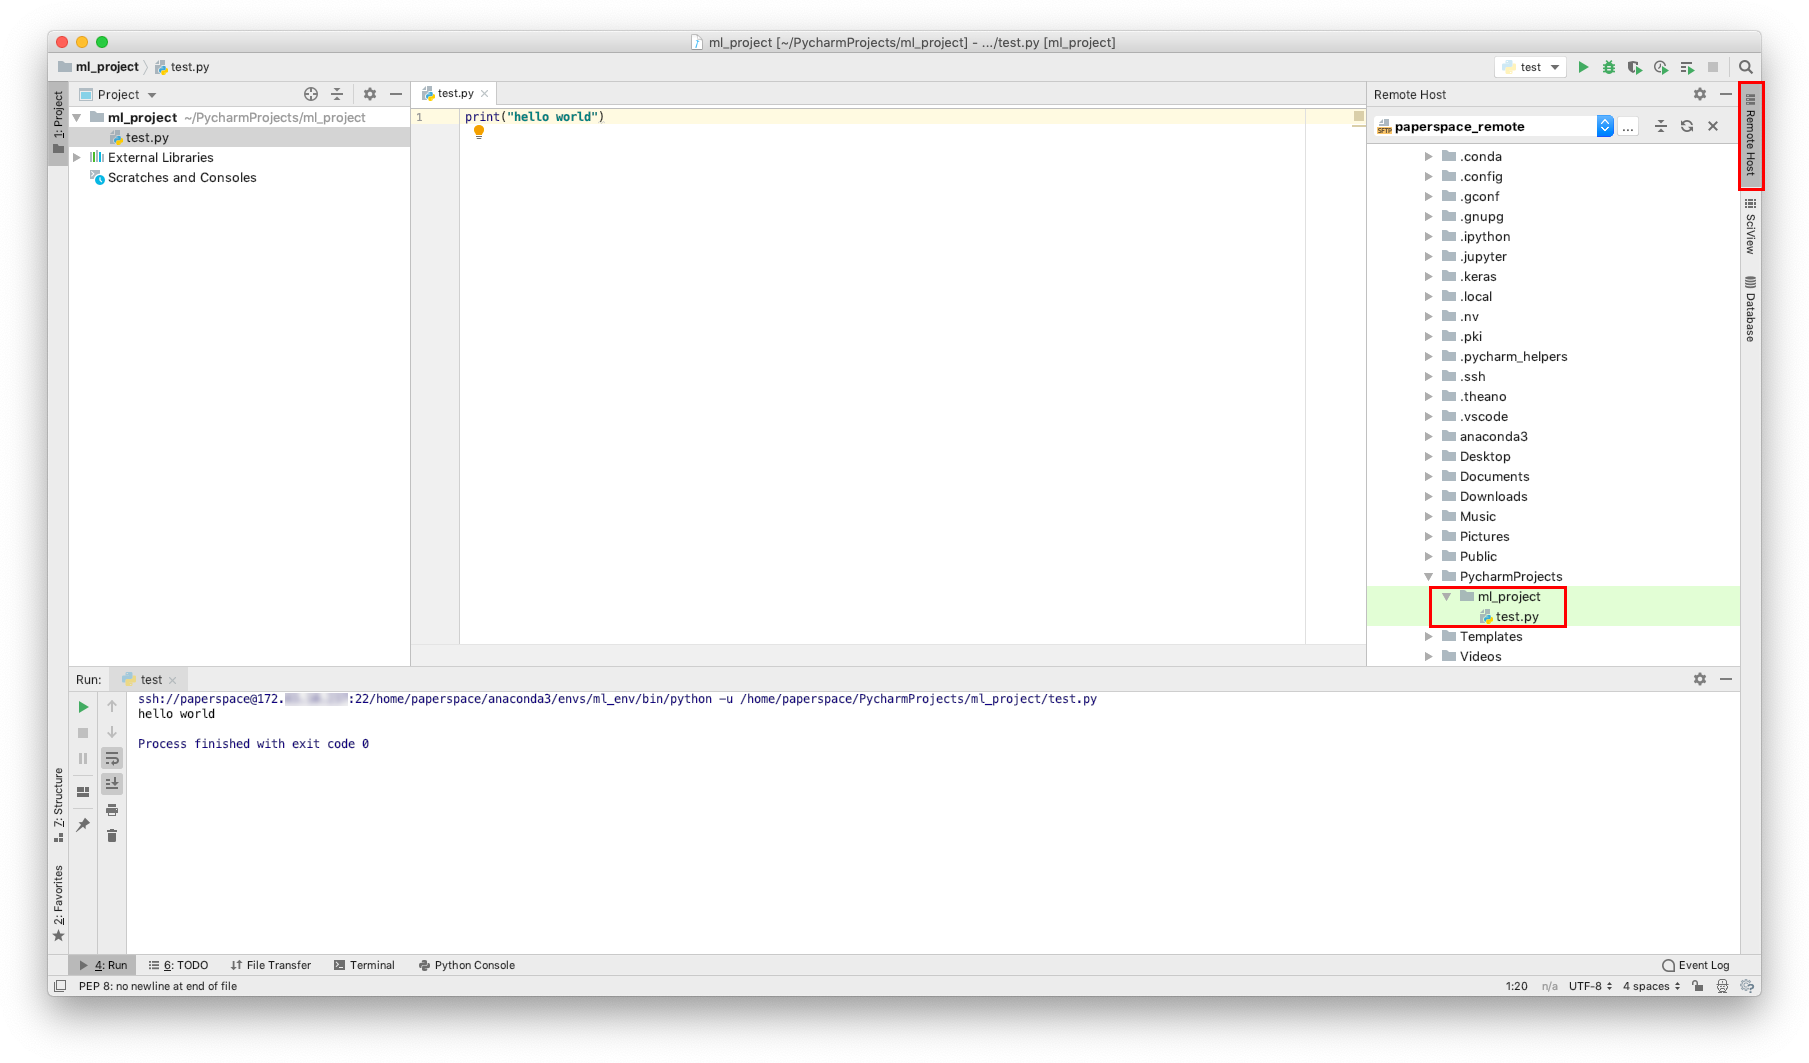 ML Cloud Computing Part 2: Connecting PyCharm to Paperspace